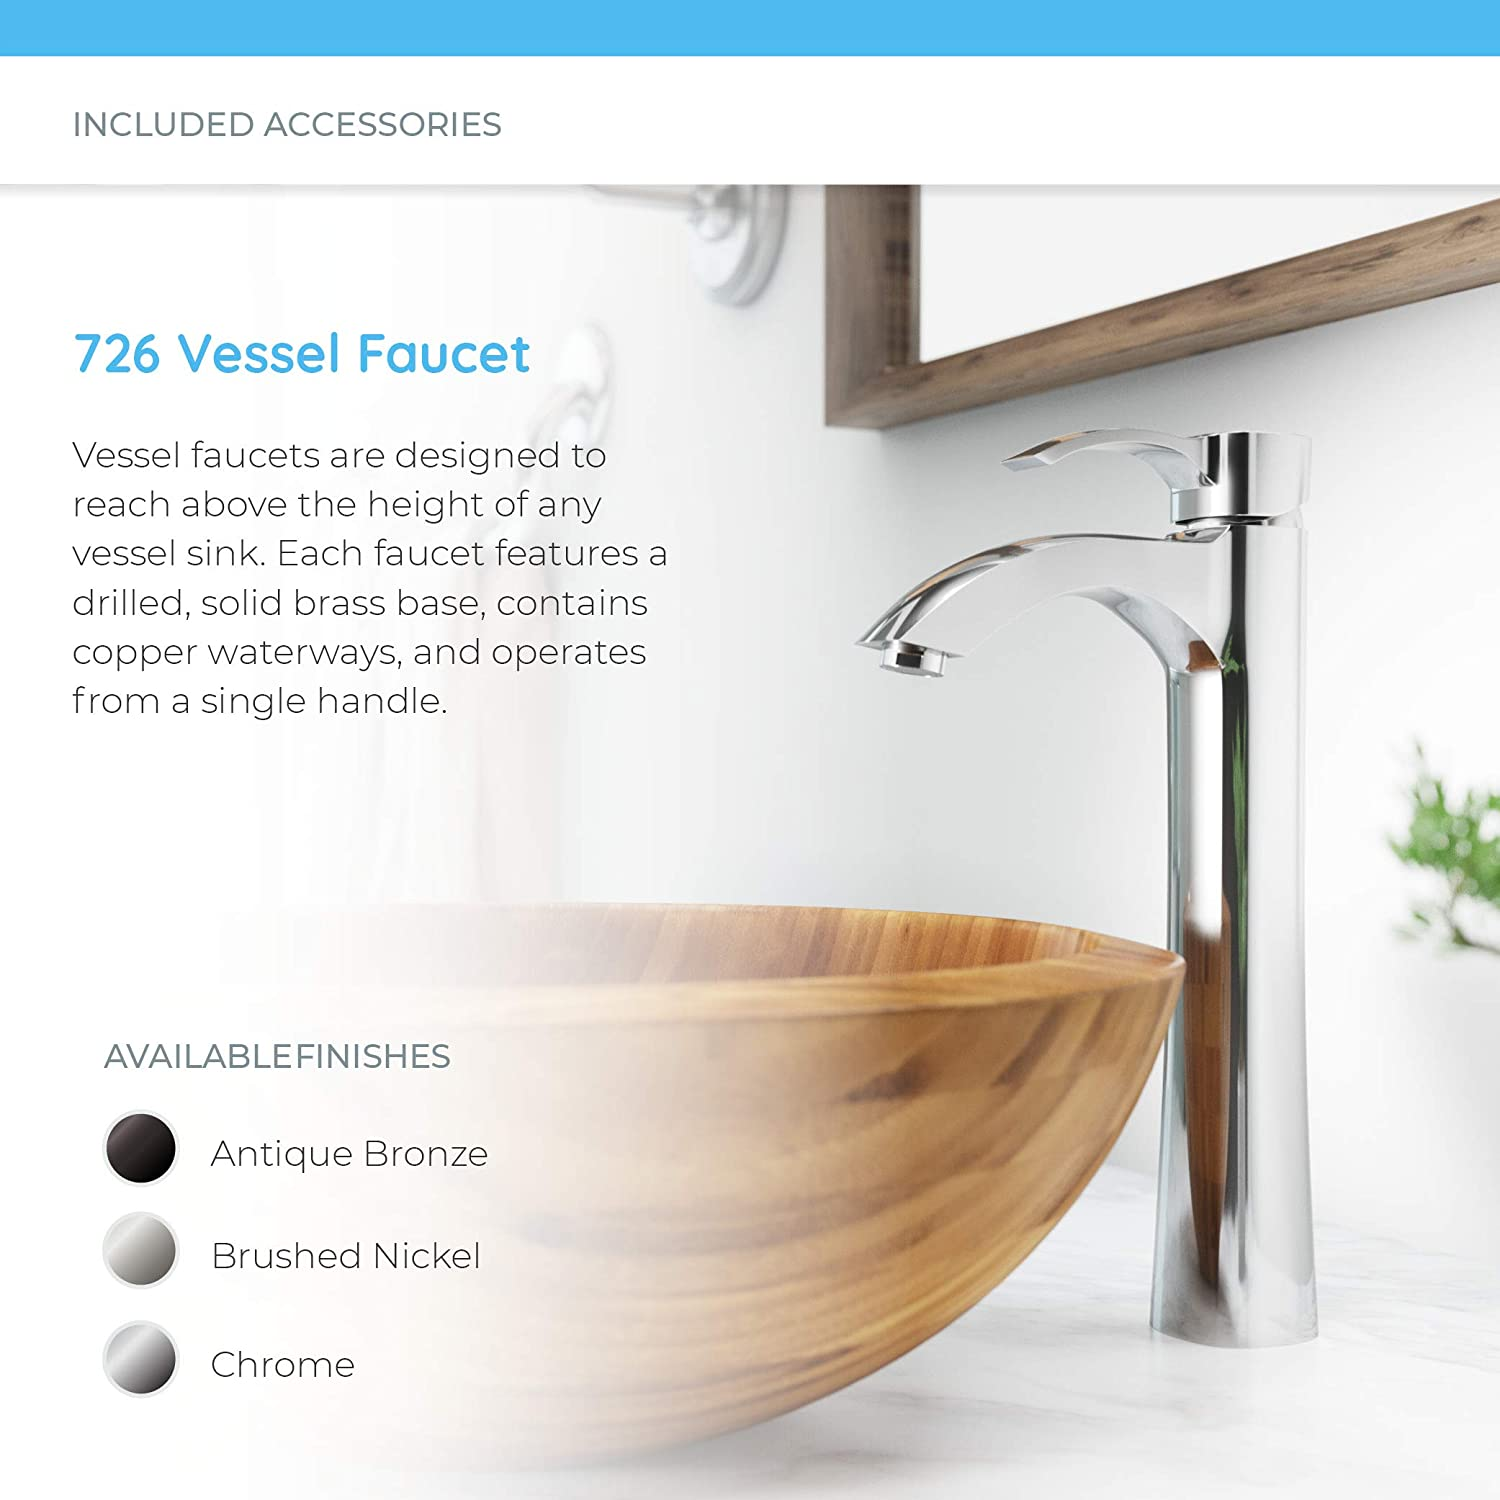 Bundle - 4 Items: Sink, Faucet, Pop Up Drain, and Sink Ring MR Direct 890 Bamboo Vessel Sink Antique Bronze Bathroom Ensemble with 718 Vessel Faucet